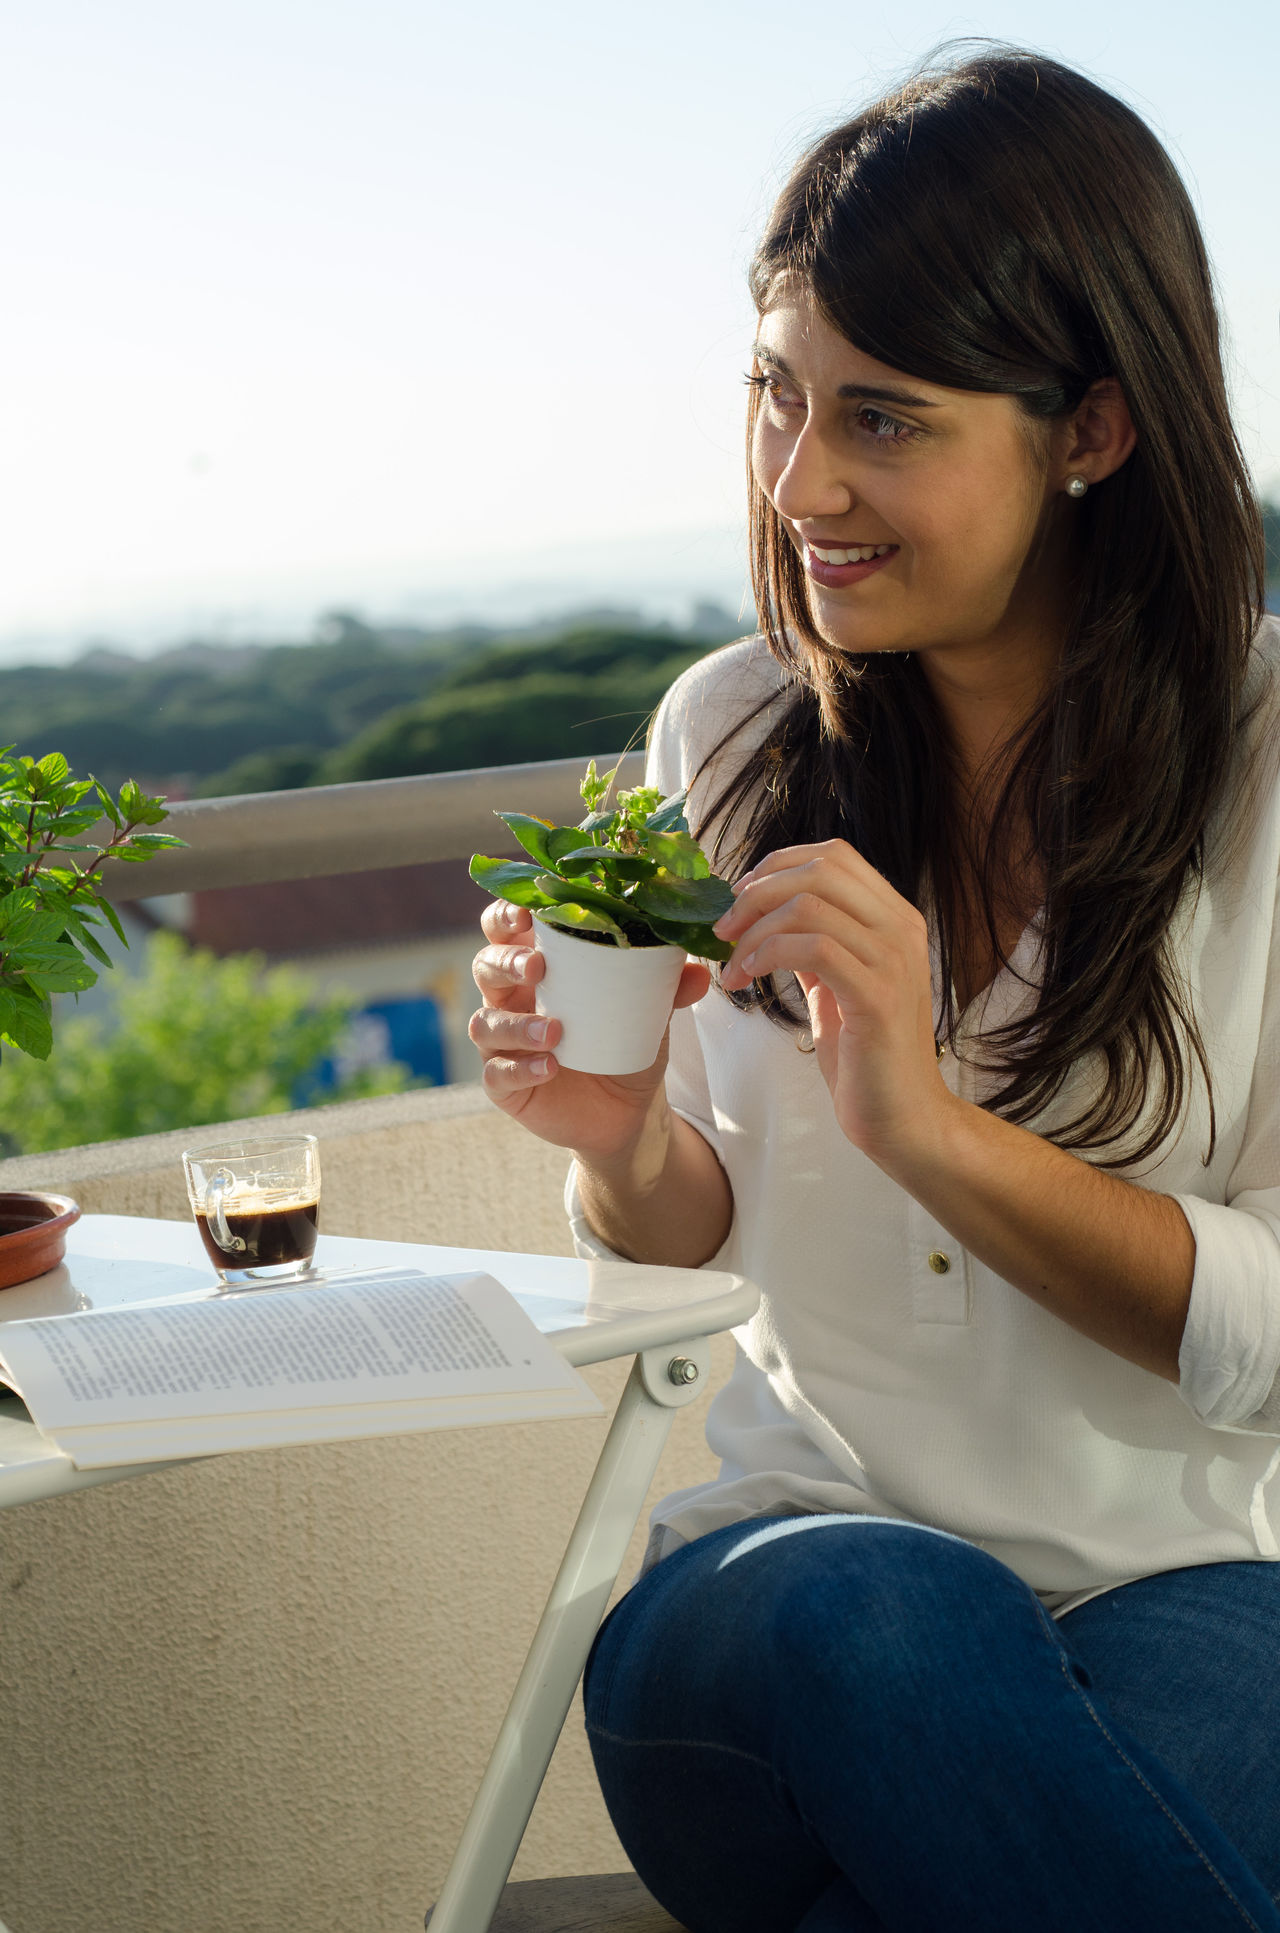 Women reading a book in the morning Day Green Greenery Hanging Out Jeans Morning One Person People Plant Real People Serious Sitting Smile Women Young Women